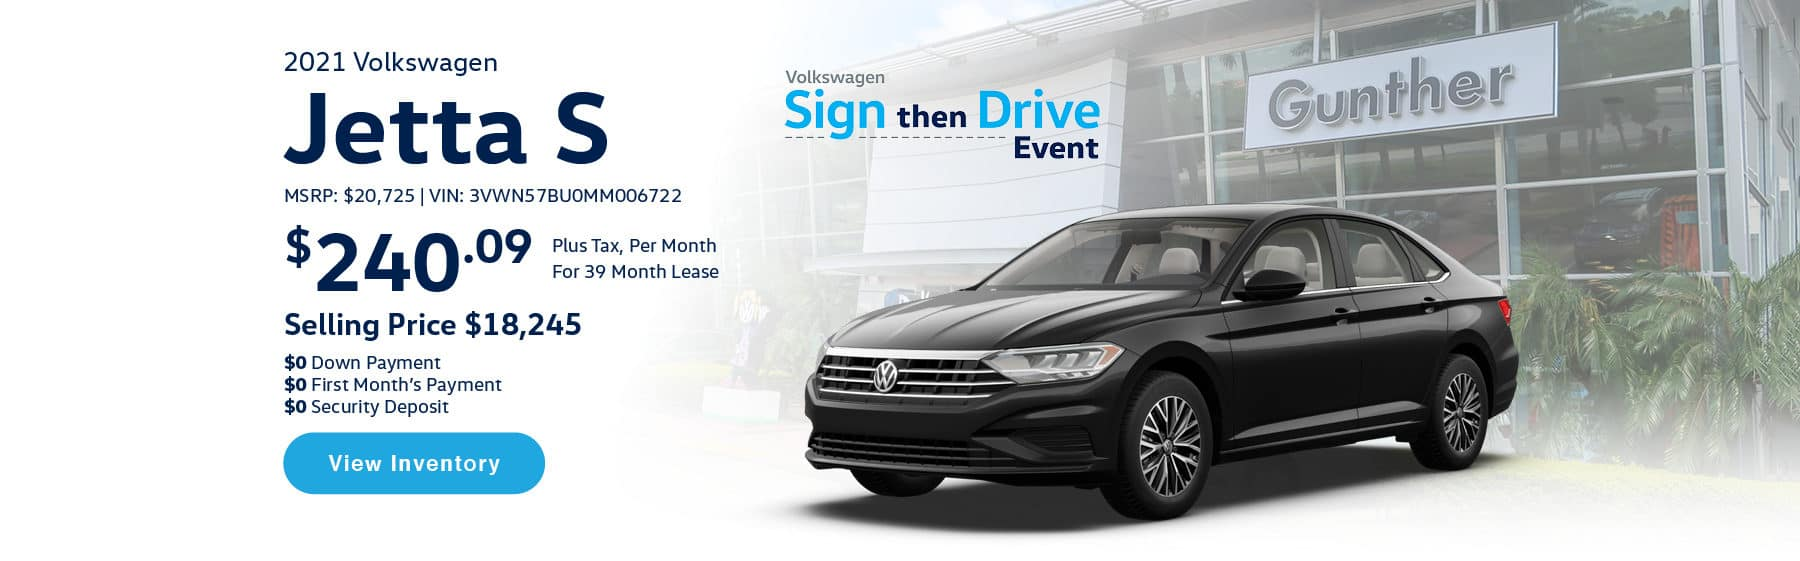 Lease the 2021 Jetta S Automatic for $240.09 per month, plus tax for 39 months. Selling price is $18,245. $0 Down Payment, $0 First Month's Payment, $0 Security Deposit. $21,025 MSRP. Vin #: 3VWN57BU0MM006722. Click or tap here to visit our inventory.